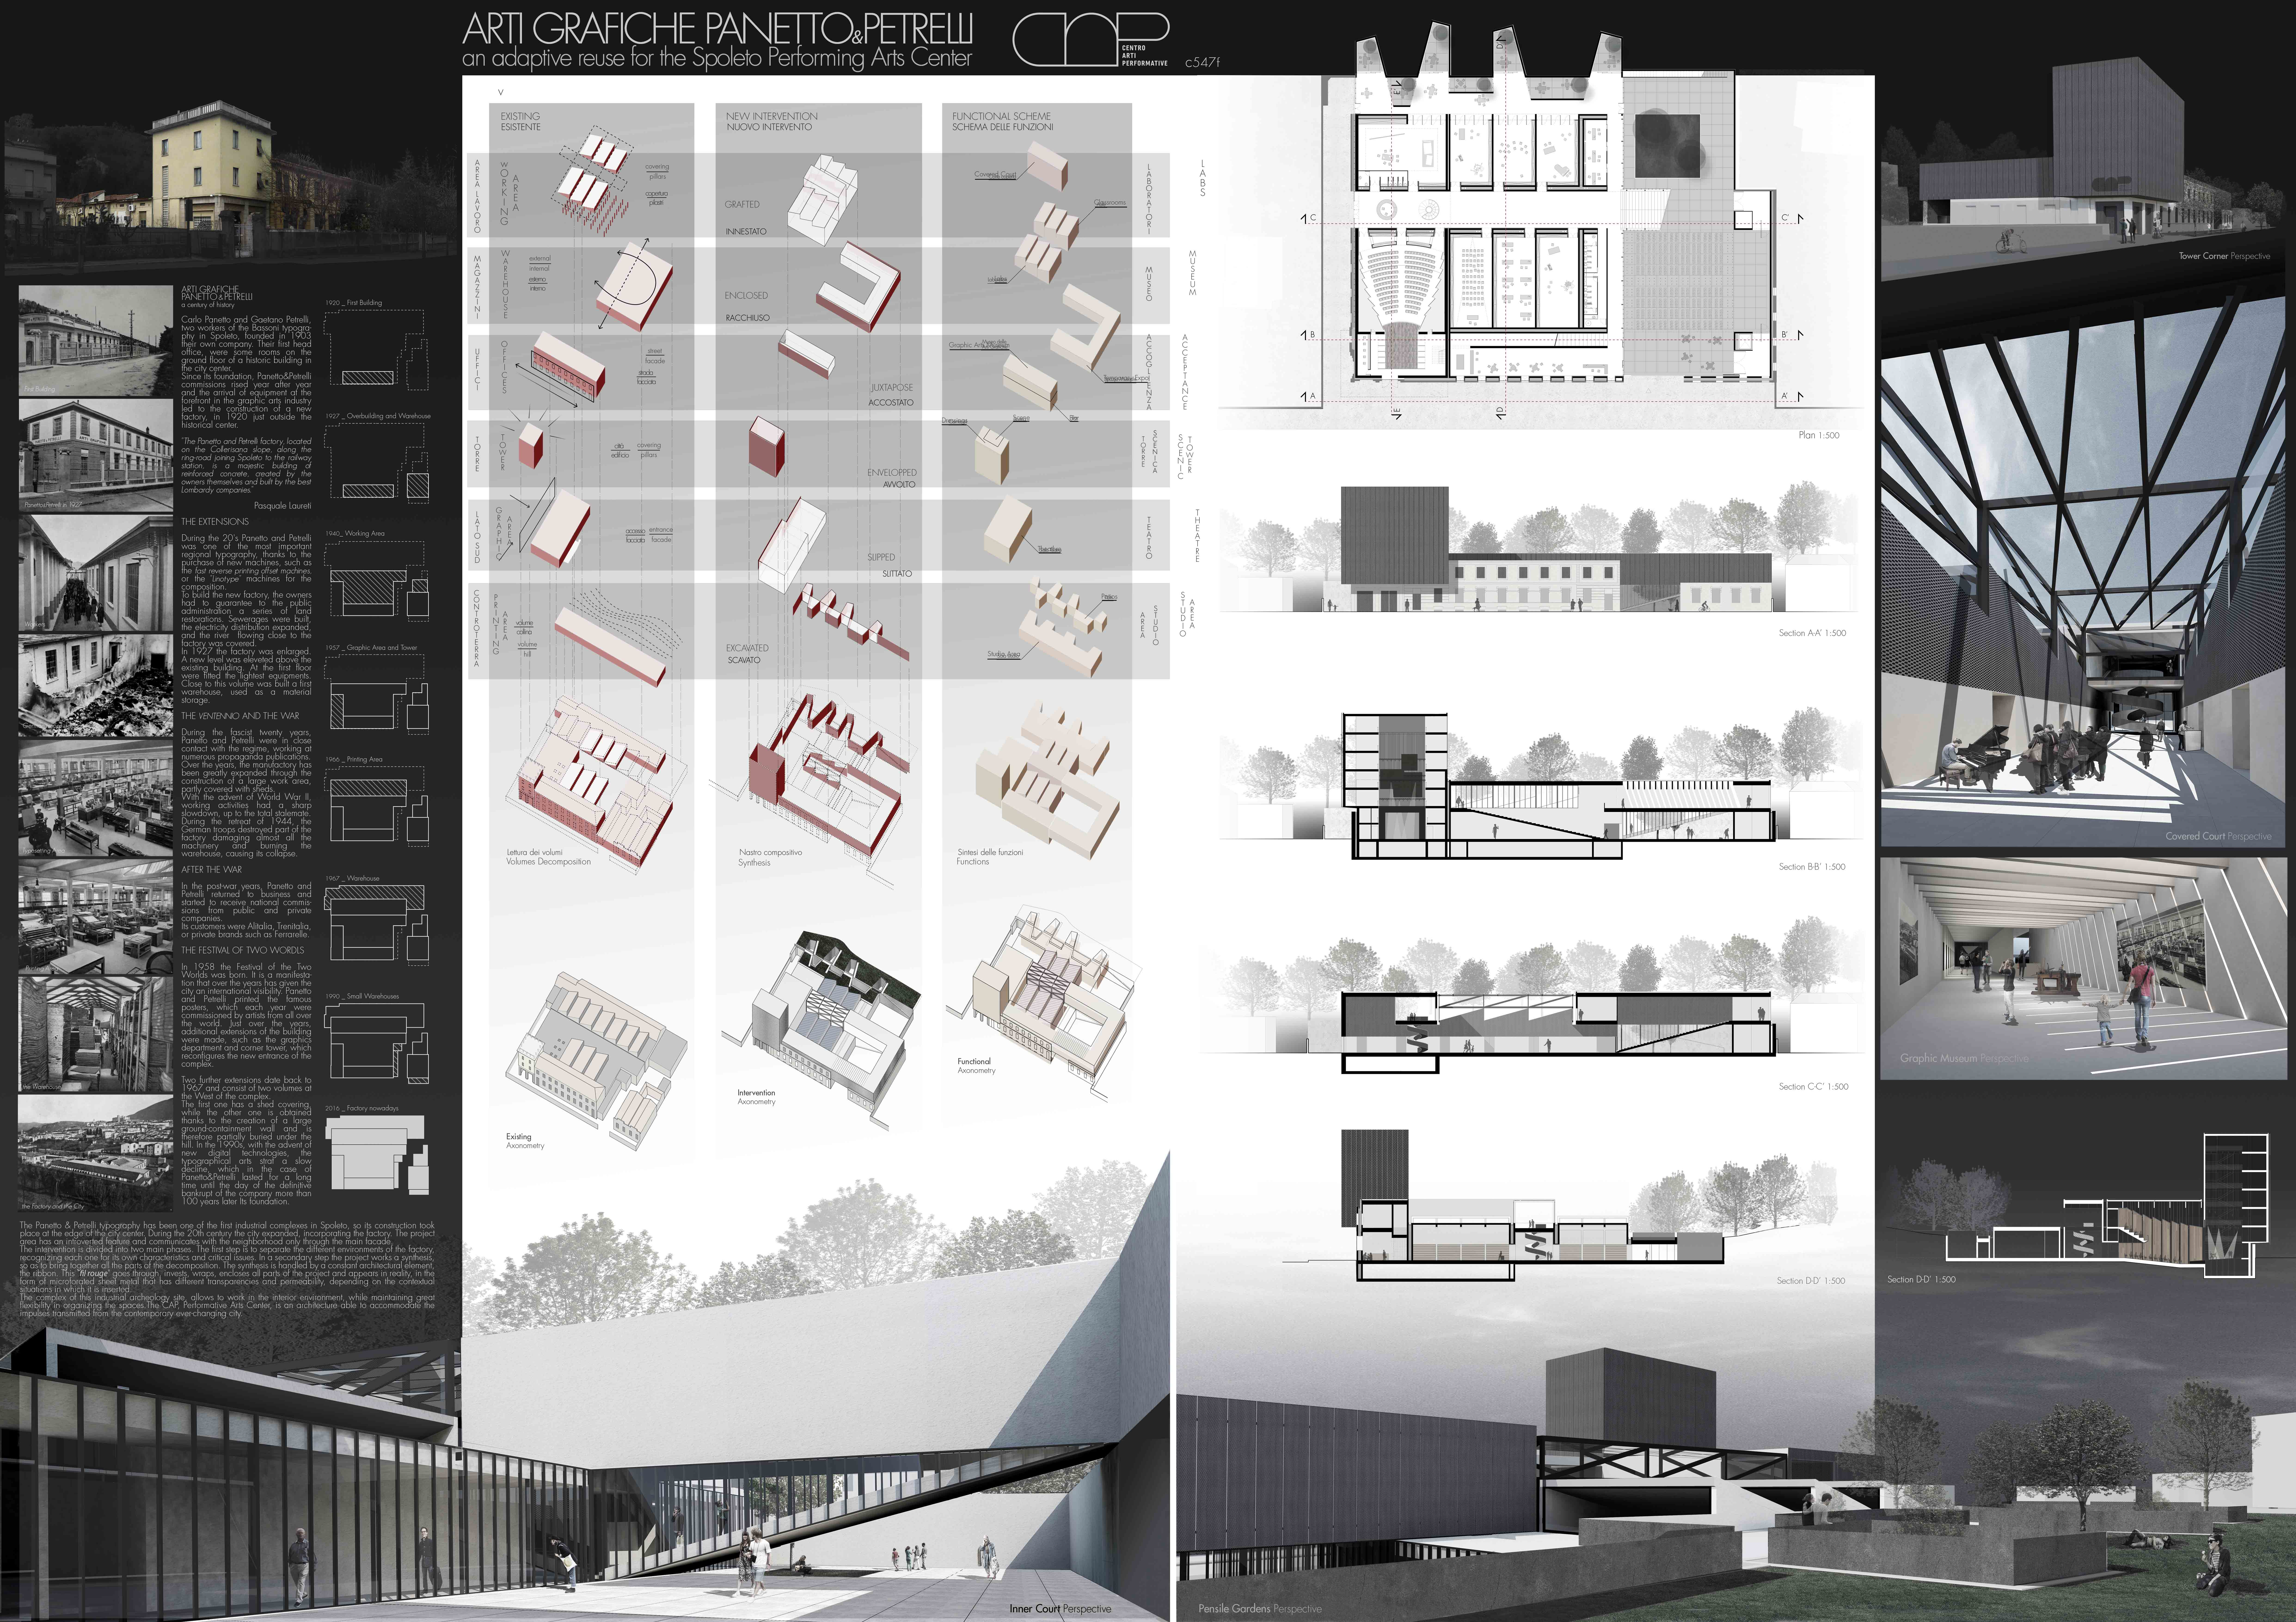 Panetto & Petrelli, an adaptive reuse for the Spoleto Performing Arts Center Board